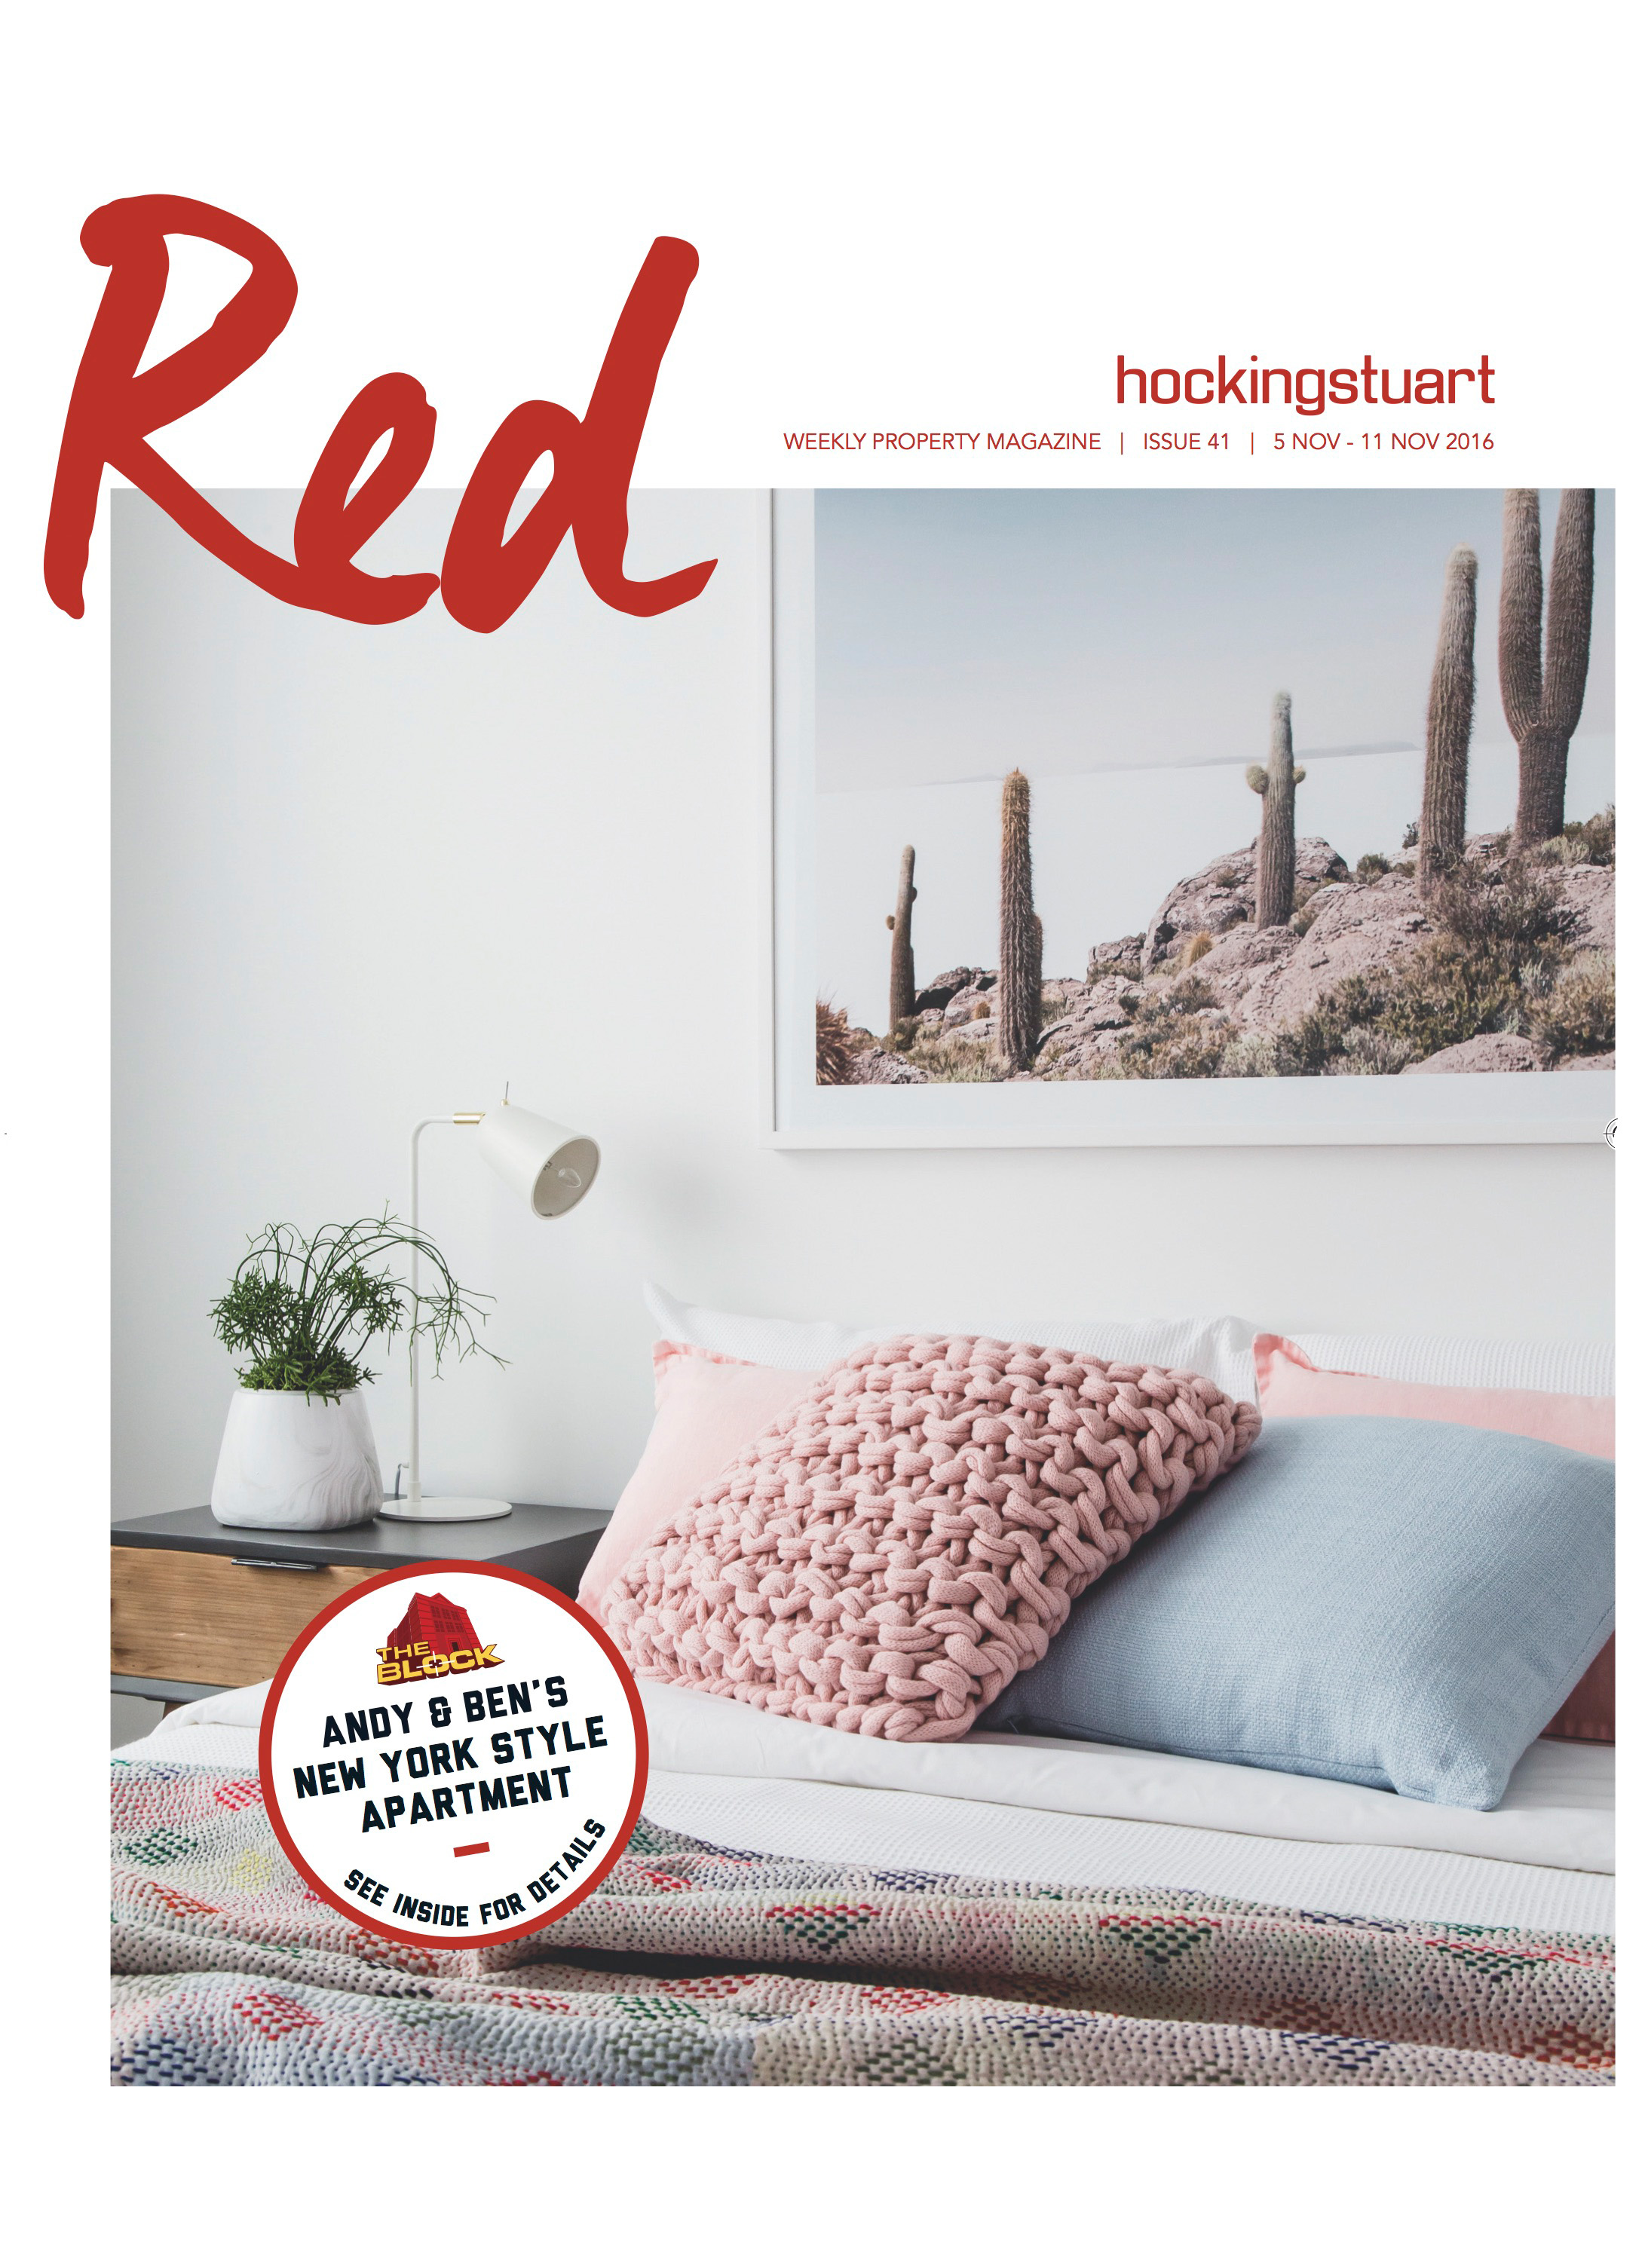 Cover : Photography by Suzi Appel